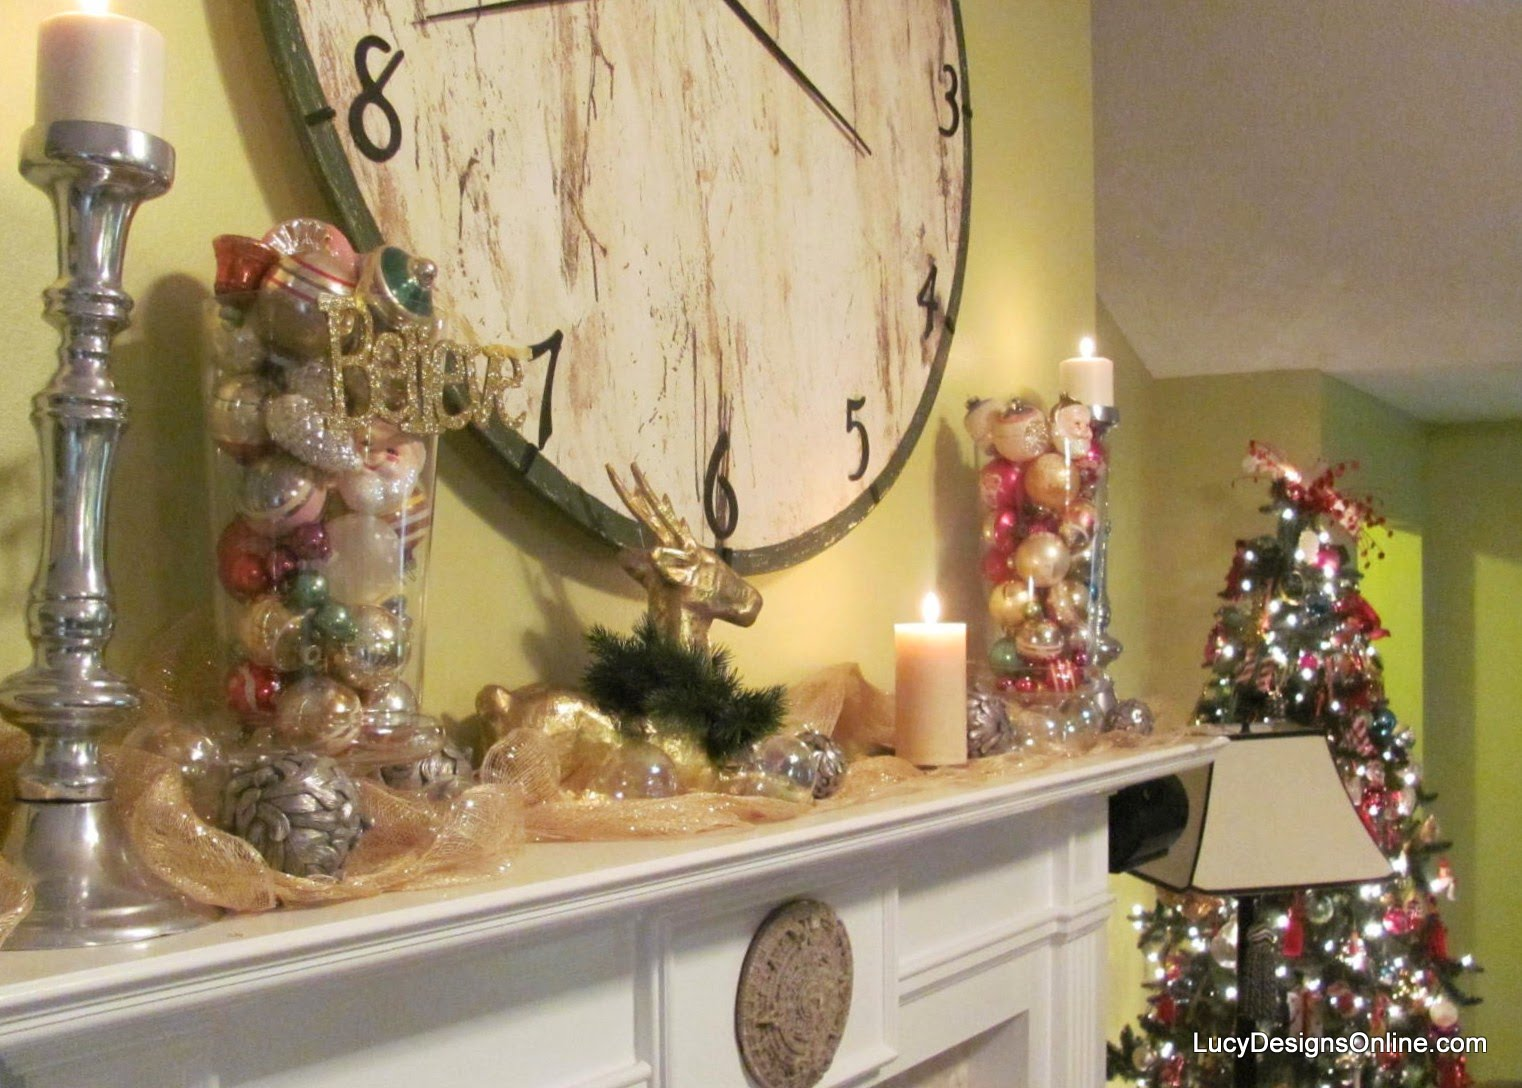 vintage ornaments in glass jars on mantel